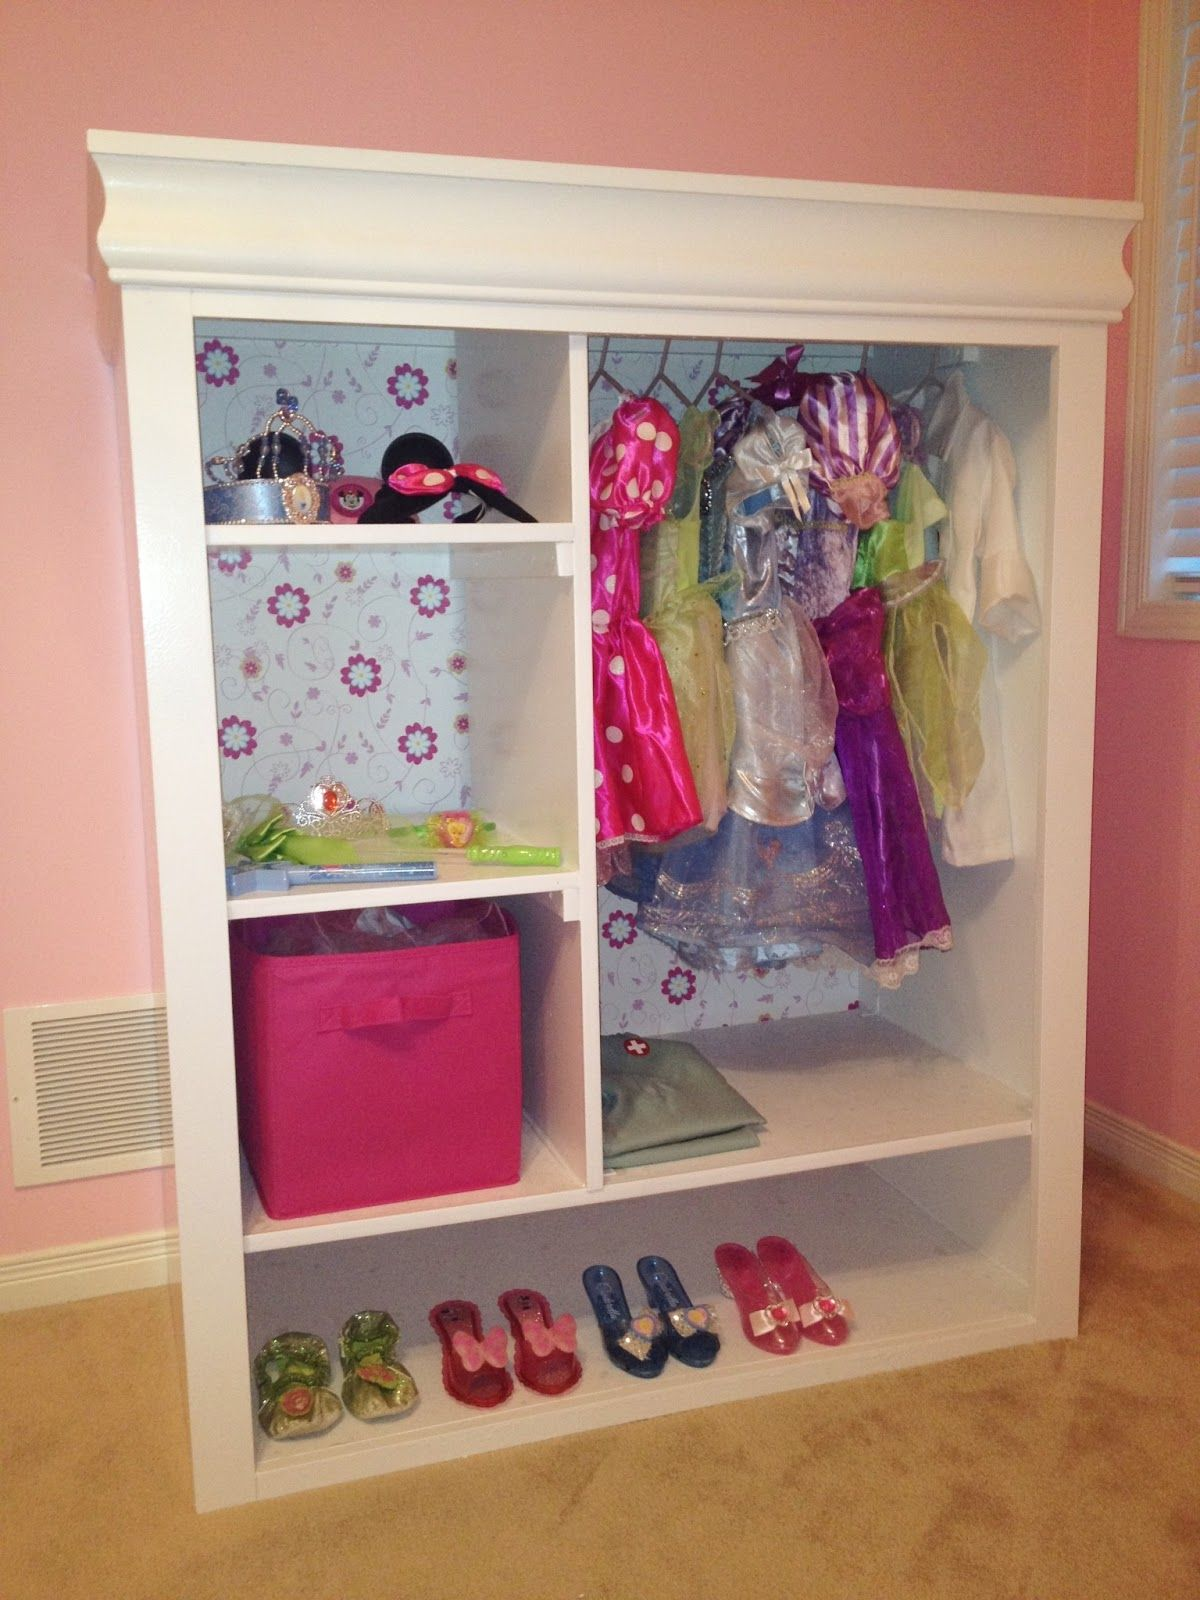 Dress Up Closet For A Little Girls Bedroom DIY Convert An Old Piece Of Furniture Into Wardrobe This Is What I Want To Do With Another